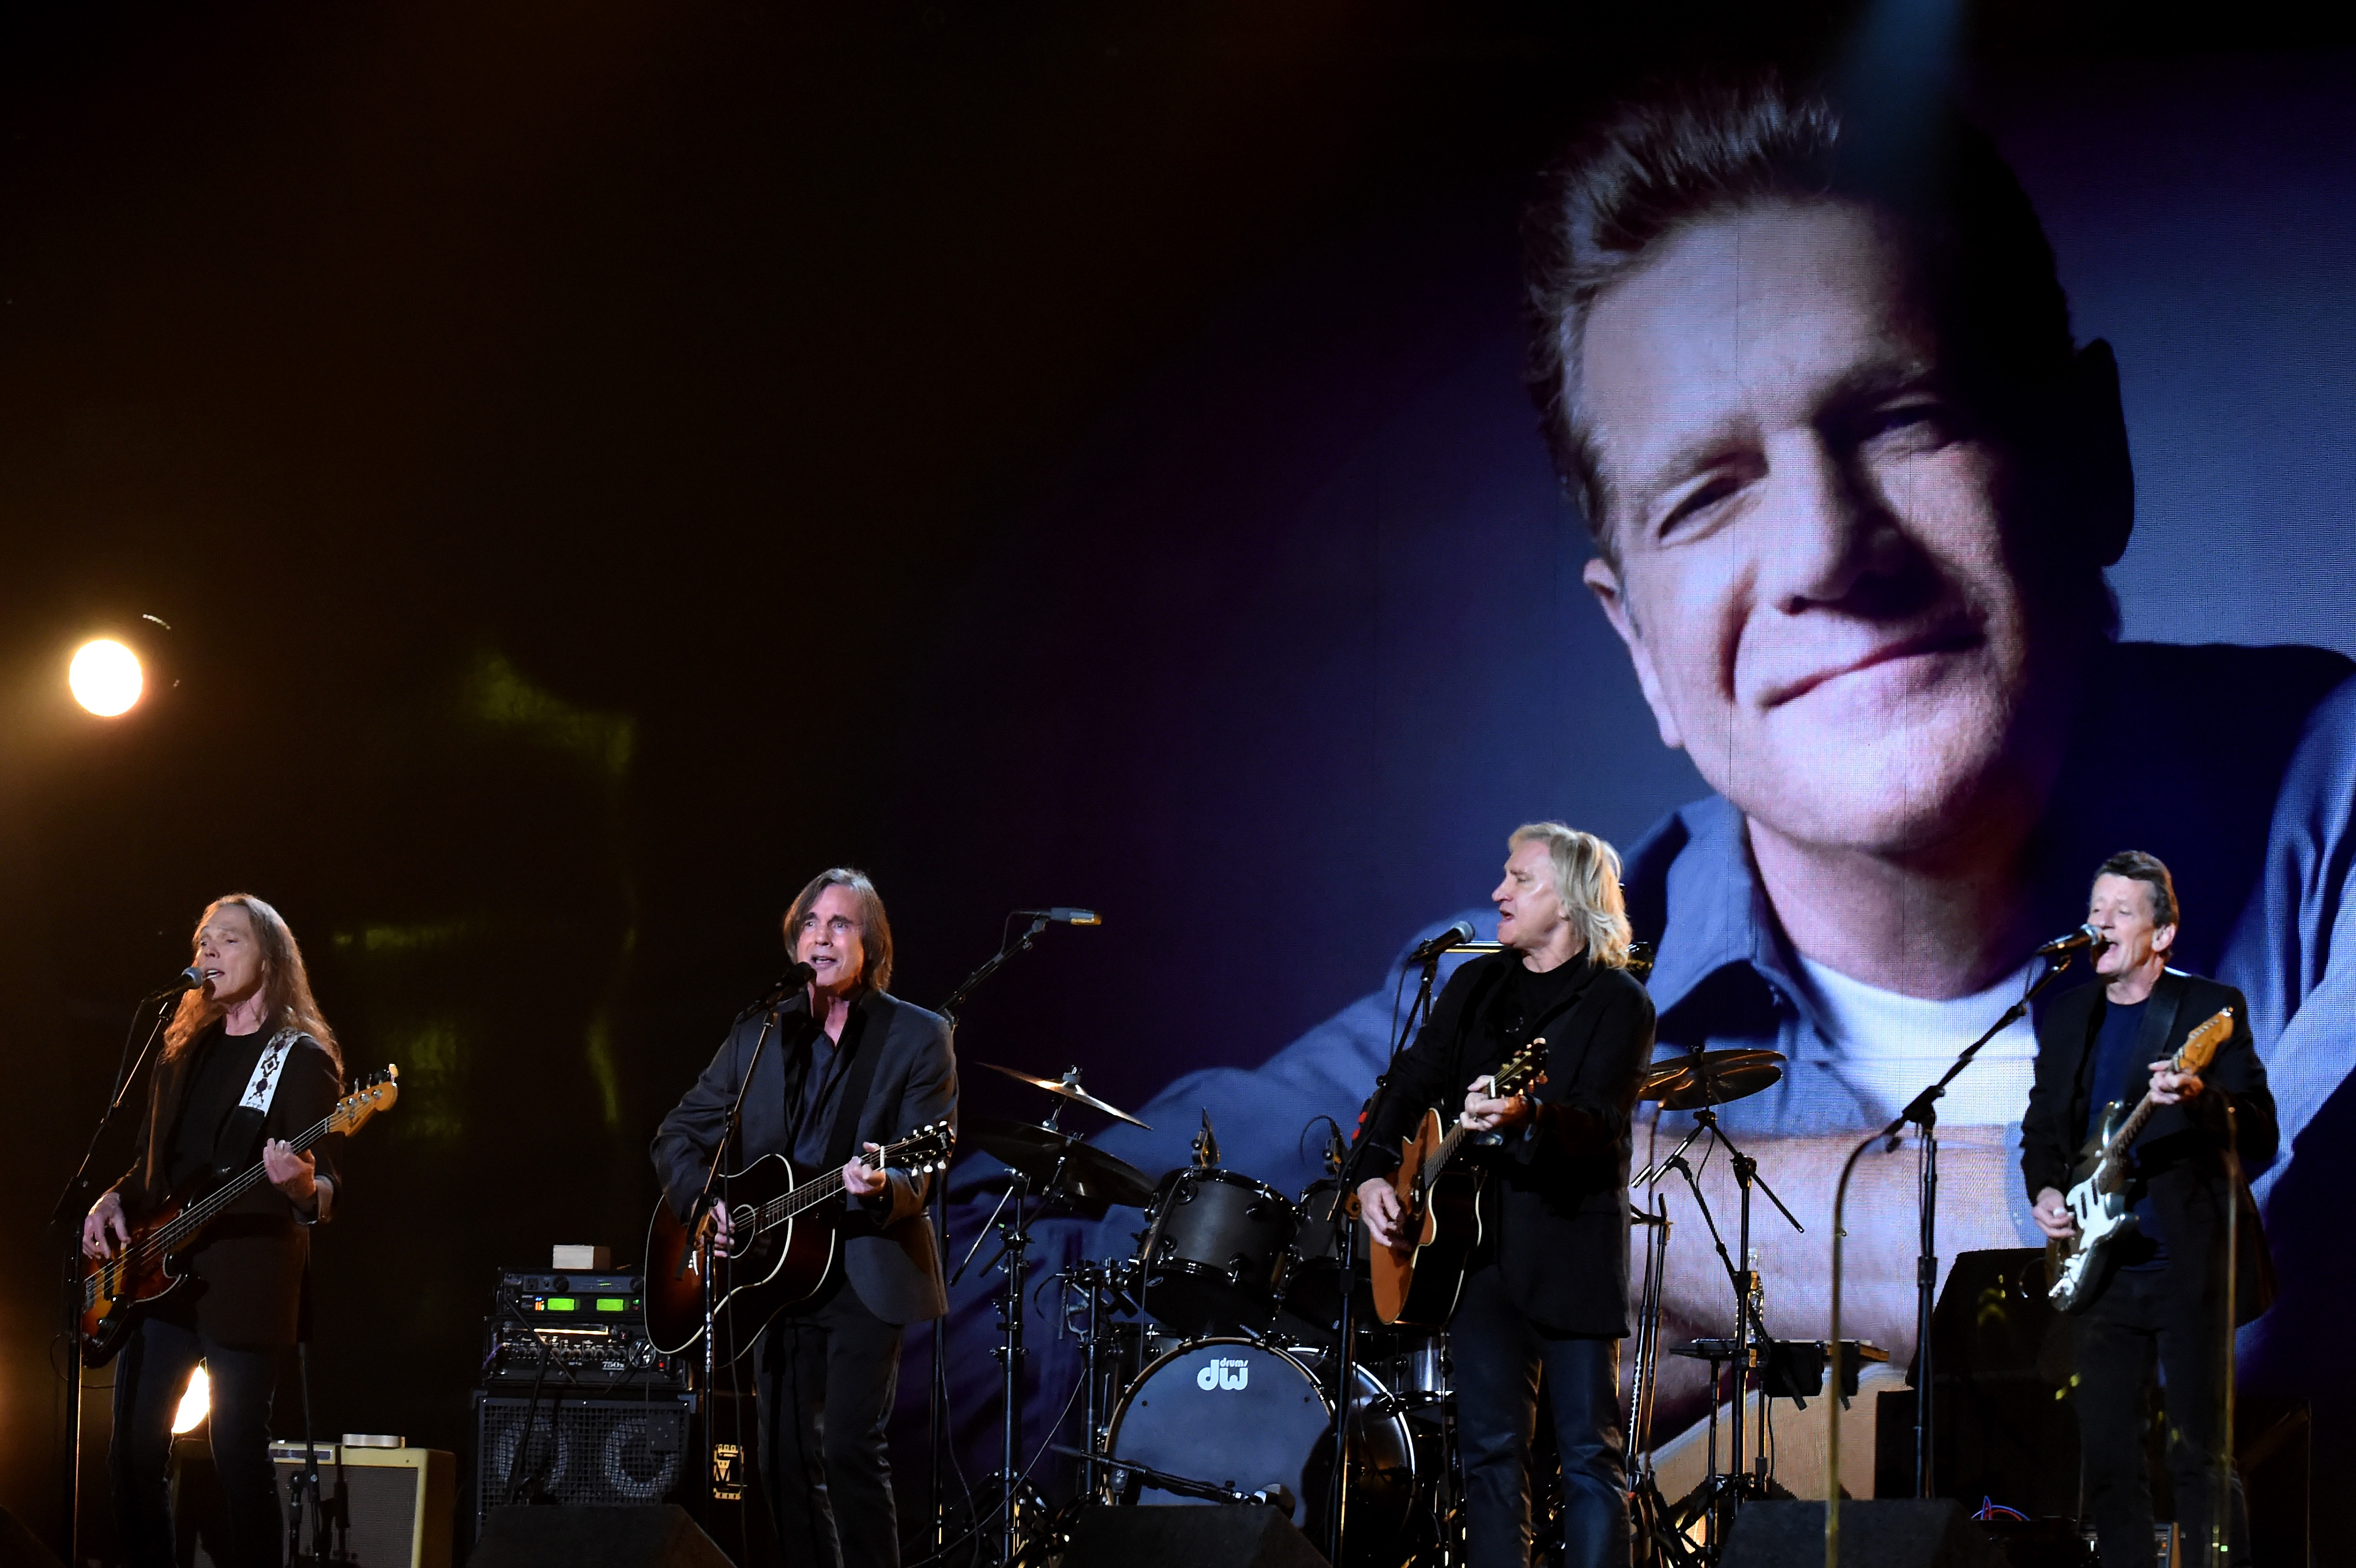 LOS ANGELES, CA - FEBRUARY 15: Musicians Bernie Leadon, Timothy B. Schmit, Don Henley and Joe Walsh of The Eagles perform wit